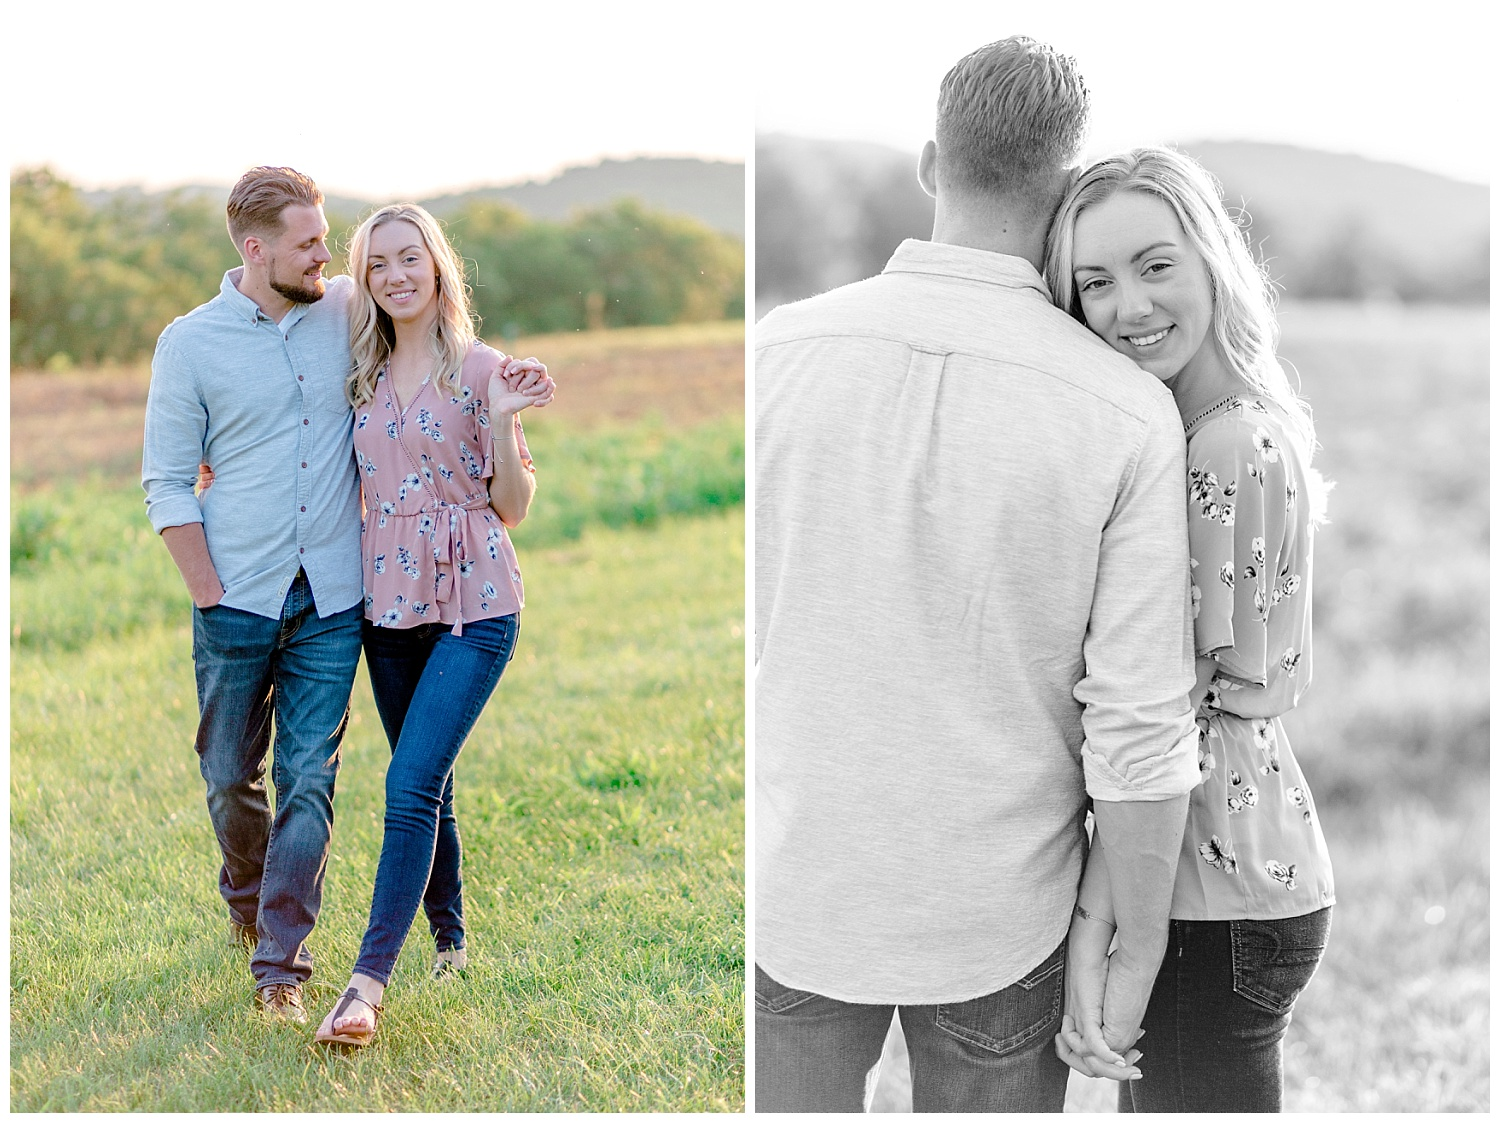 Blue Marsh Lake Reading Pennsylvania flower field golden hour engagement session by PA based wedding and lifestyle photographer Lytle photography_0023.jpg